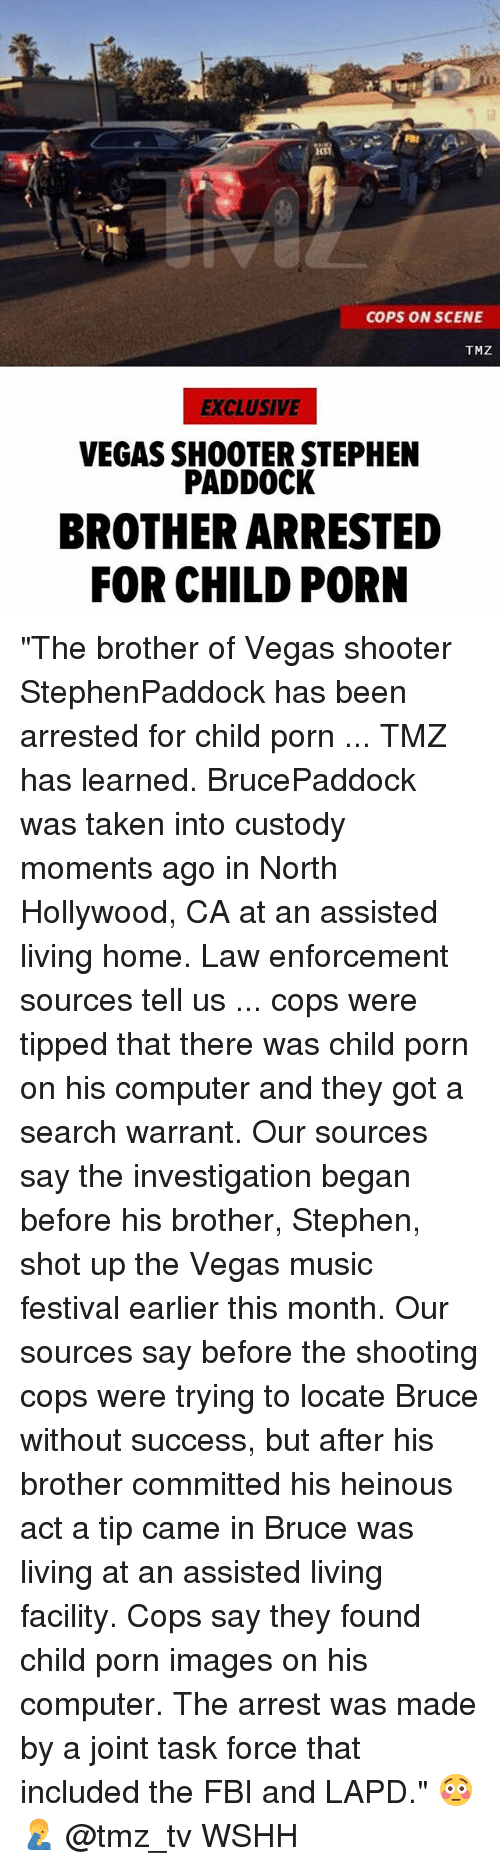 """Fbi, Memes, and Music: COPS ON SCENE  TMZ  EXCLUSIVE  VEGAS SHOOTER STEPHEN  PADDOCK  BROTHER ARRESTED  FOR CHILD PORN """"The brother of Vegas shooter StephenPaddock has been arrested for child porn ... TMZ has learned. BrucePaddock was taken into custody moments ago in North Hollywood, CA at an assisted living home. Law enforcement sources tell us ... cops were tipped that there was child porn on his computer and they got a search warrant. Our sources say the investigation began before his brother, Stephen, shot up the Vegas music festival earlier this month. Our sources say before the shooting cops were trying to locate Bruce without success, but after his brother committed his heinous act a tip came in Bruce was living at an assisted living facility. Cops say they found child porn images on his computer. The arrest was made by a joint task force that included the FBI and LAPD."""" 😳🤦♂️ @tmz_tv WSHH"""